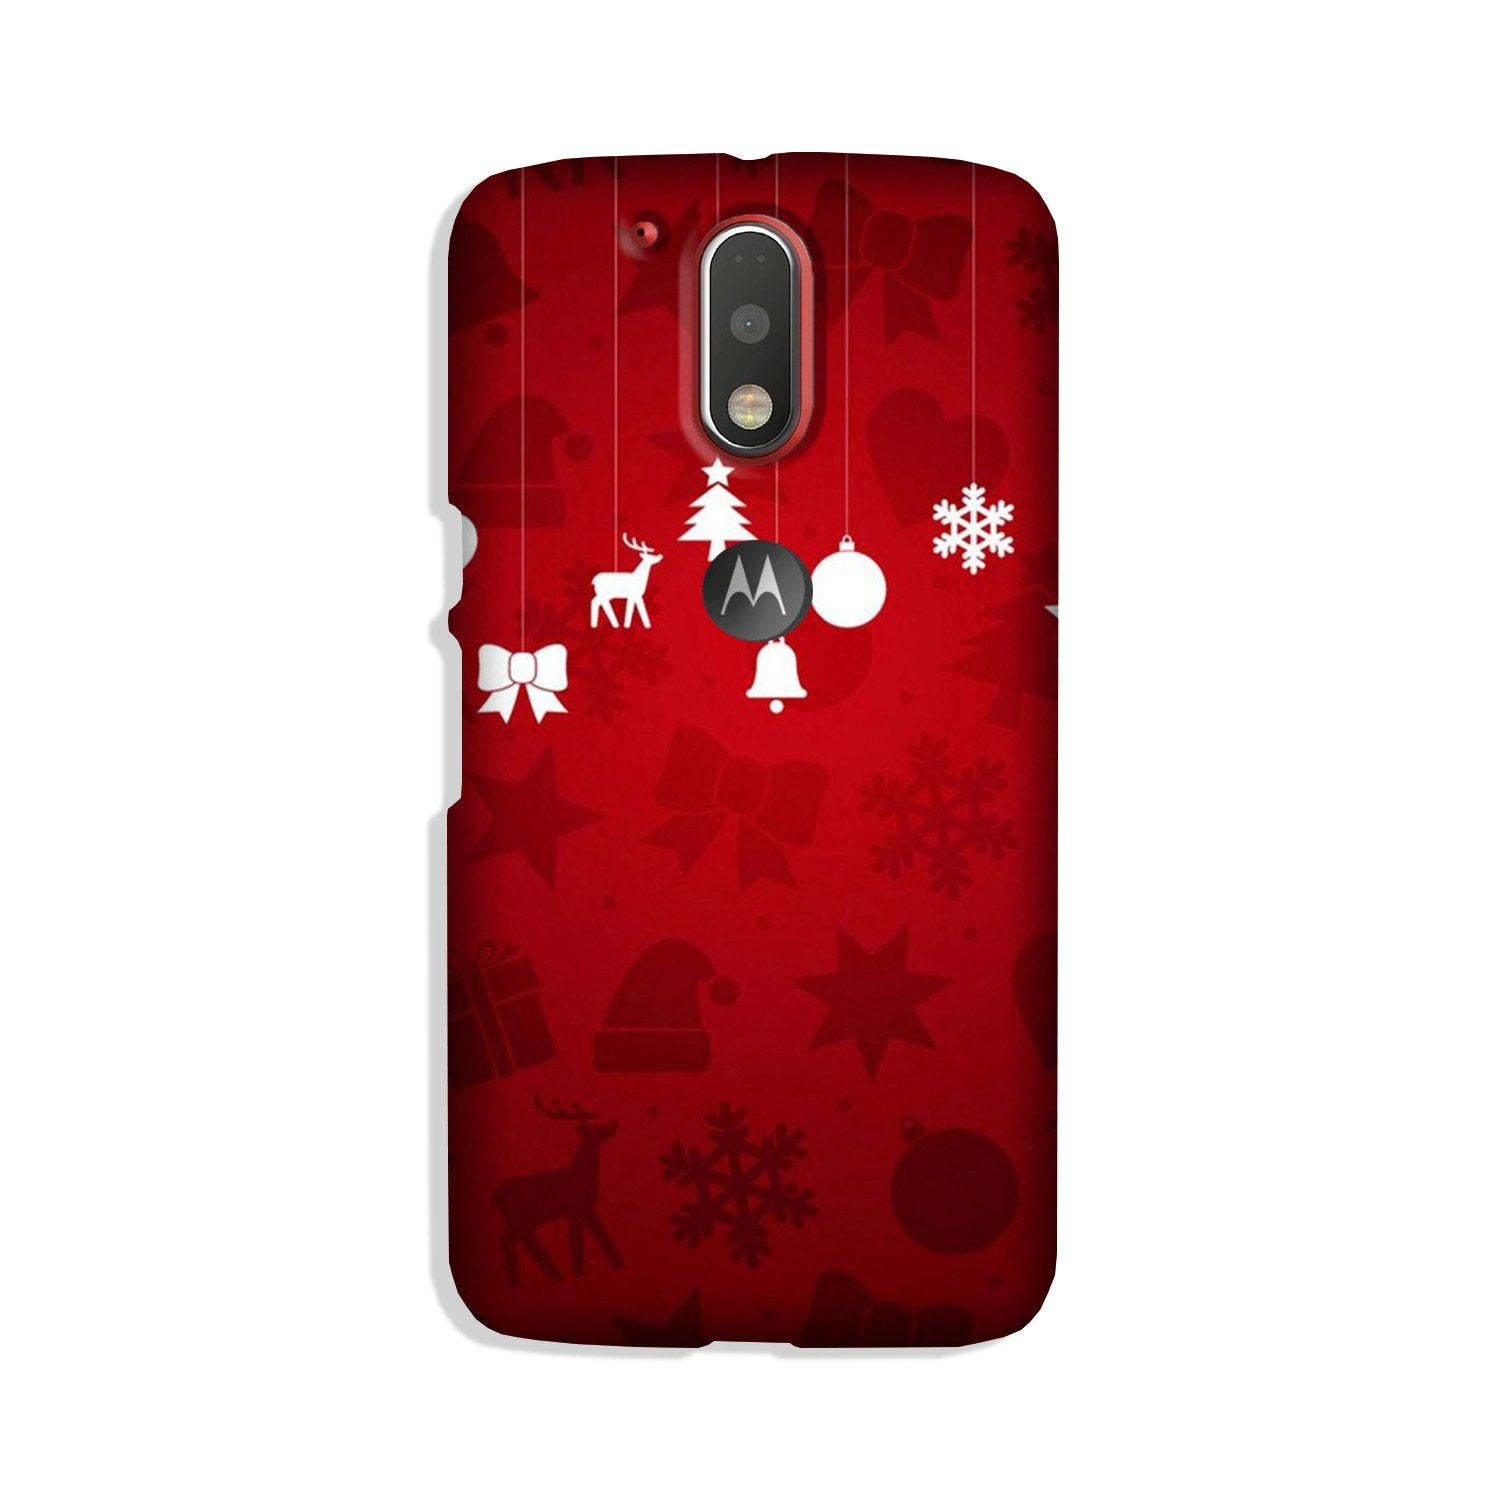 Christmas Case for Moto G4 Plus